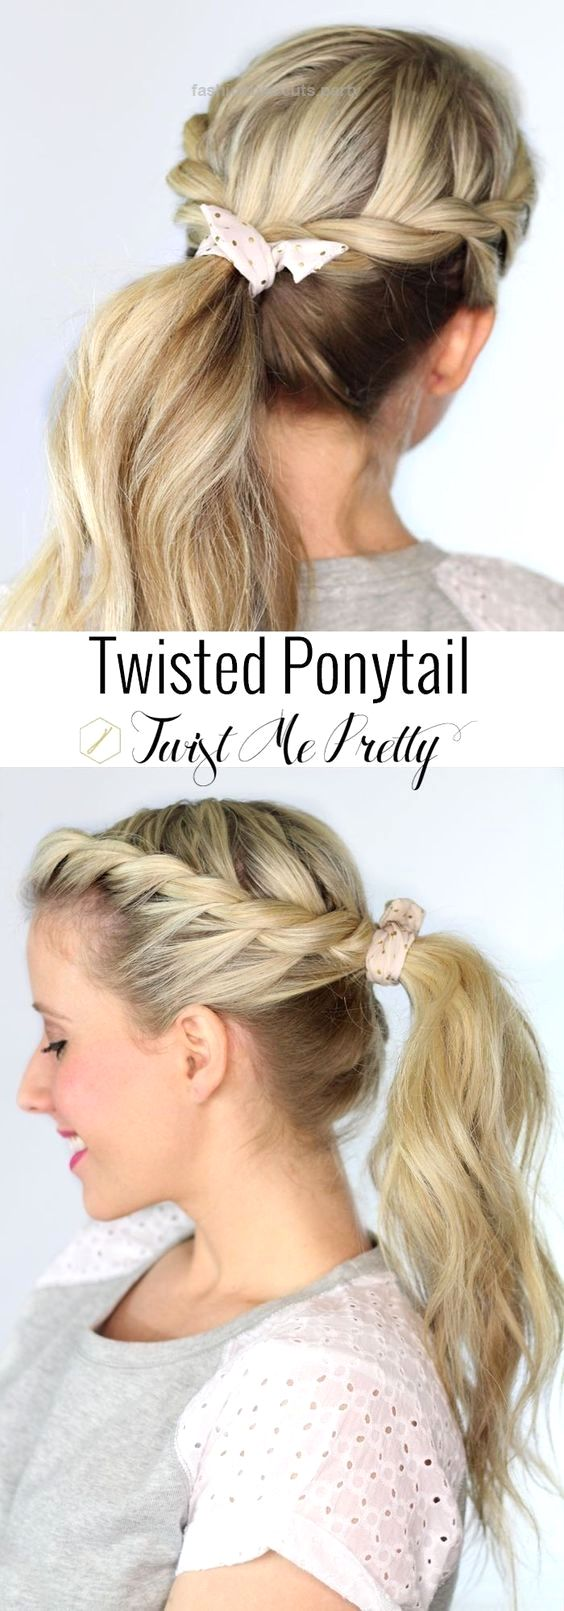 ideas for hair styles 25 best ideas about easy hairstyles for school on 6862